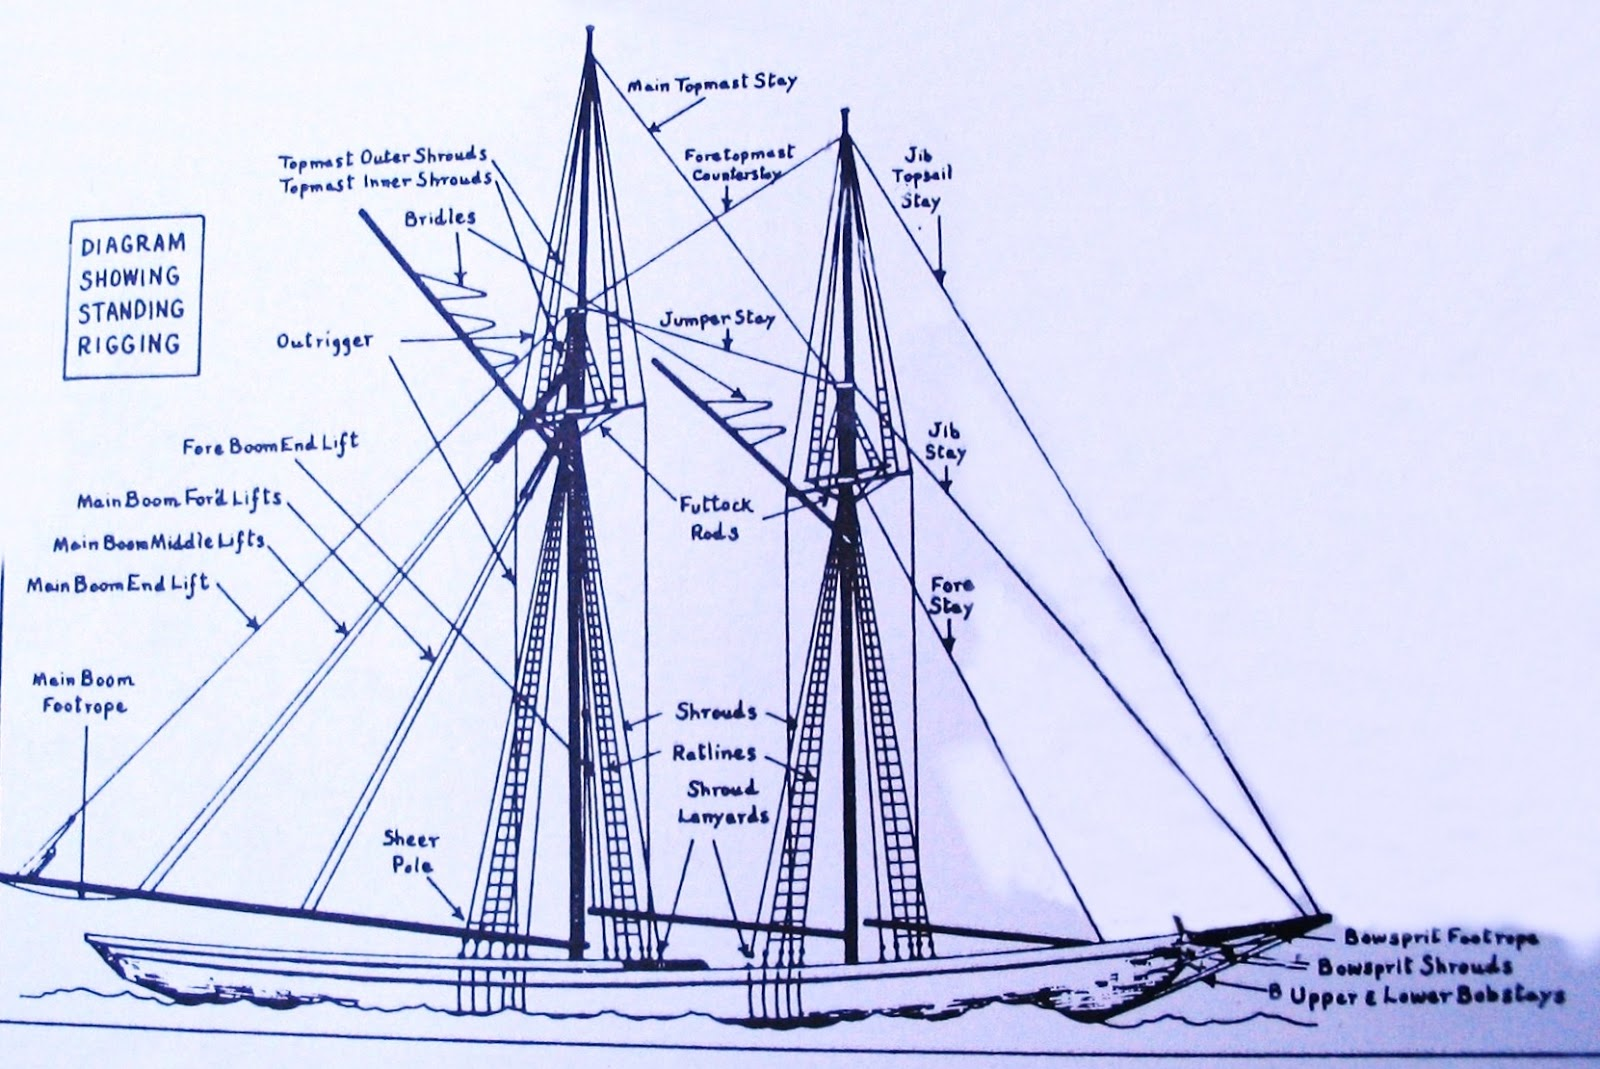 mast rigging diagram ford focus sony radio wiring basic running 29 images